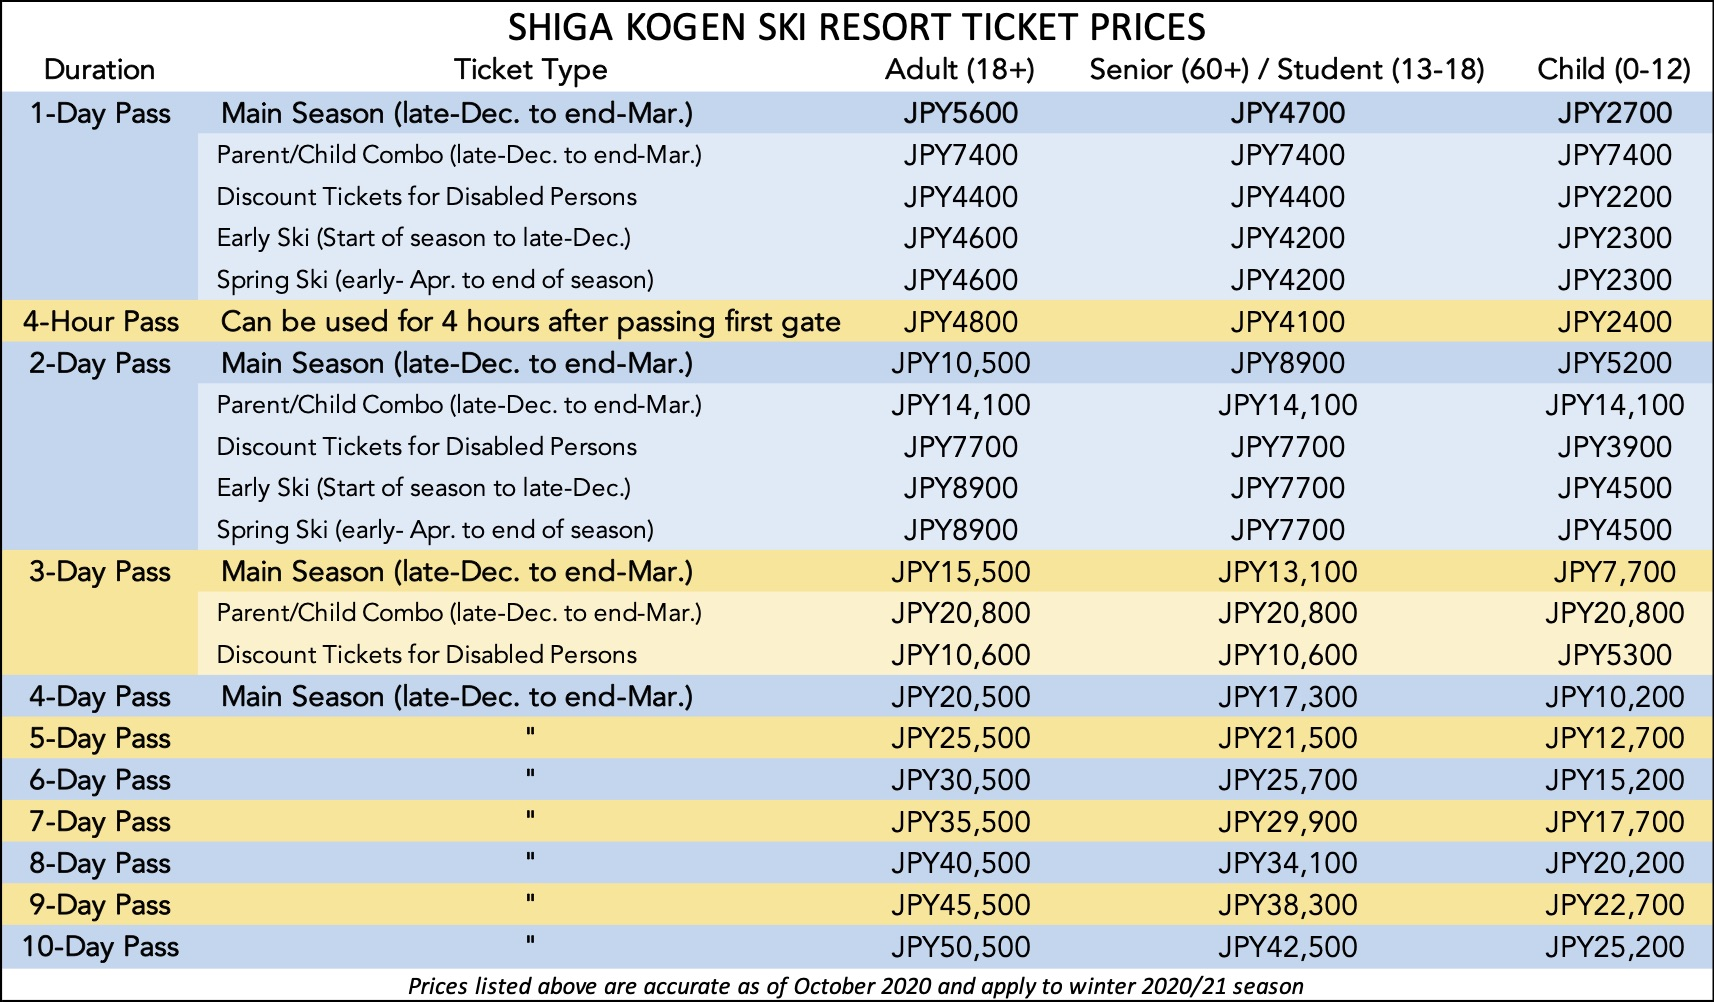 shiga-kogen-ticket-prices-202021